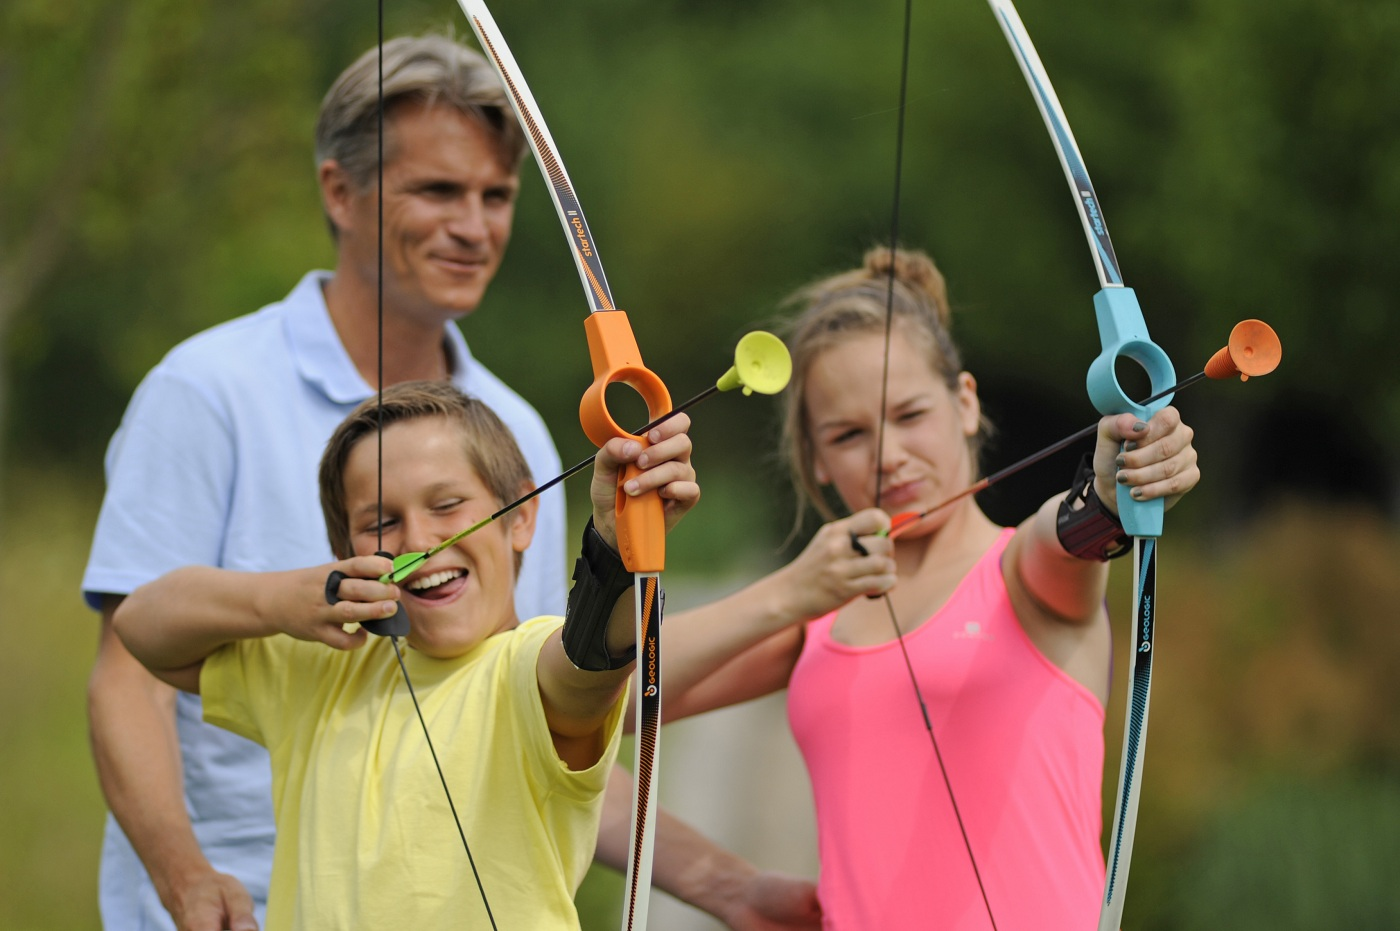 725cd5dd5 ... Decathlon children s toy bow and arrow Entertainment sucker bow for  young archery enthusiast GEOLOGIC